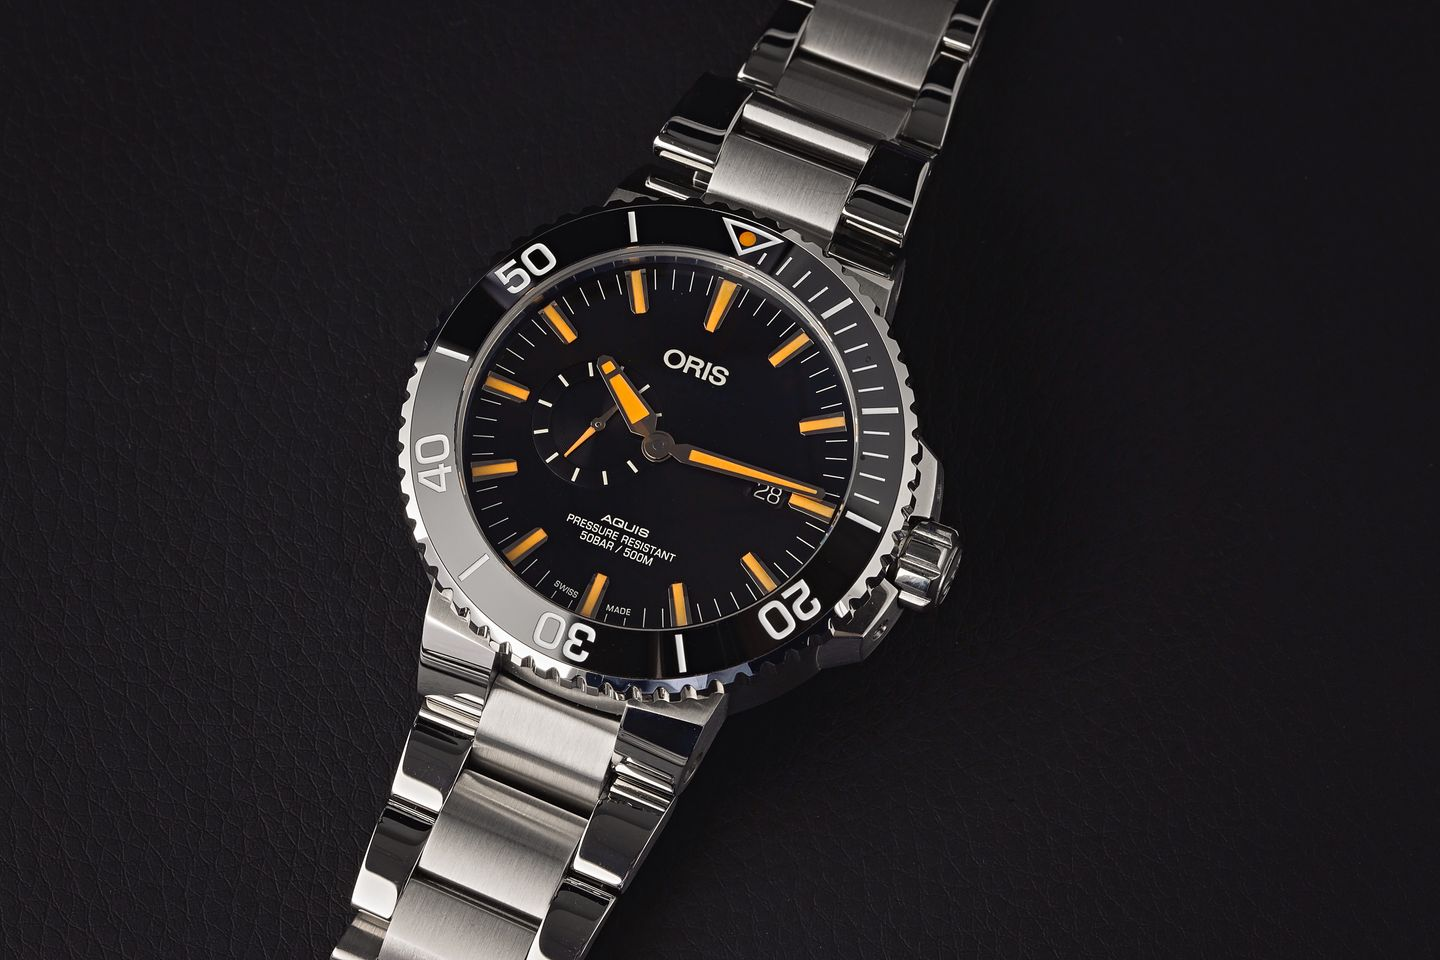 Oris Dive Watch Collections Guide Aquis